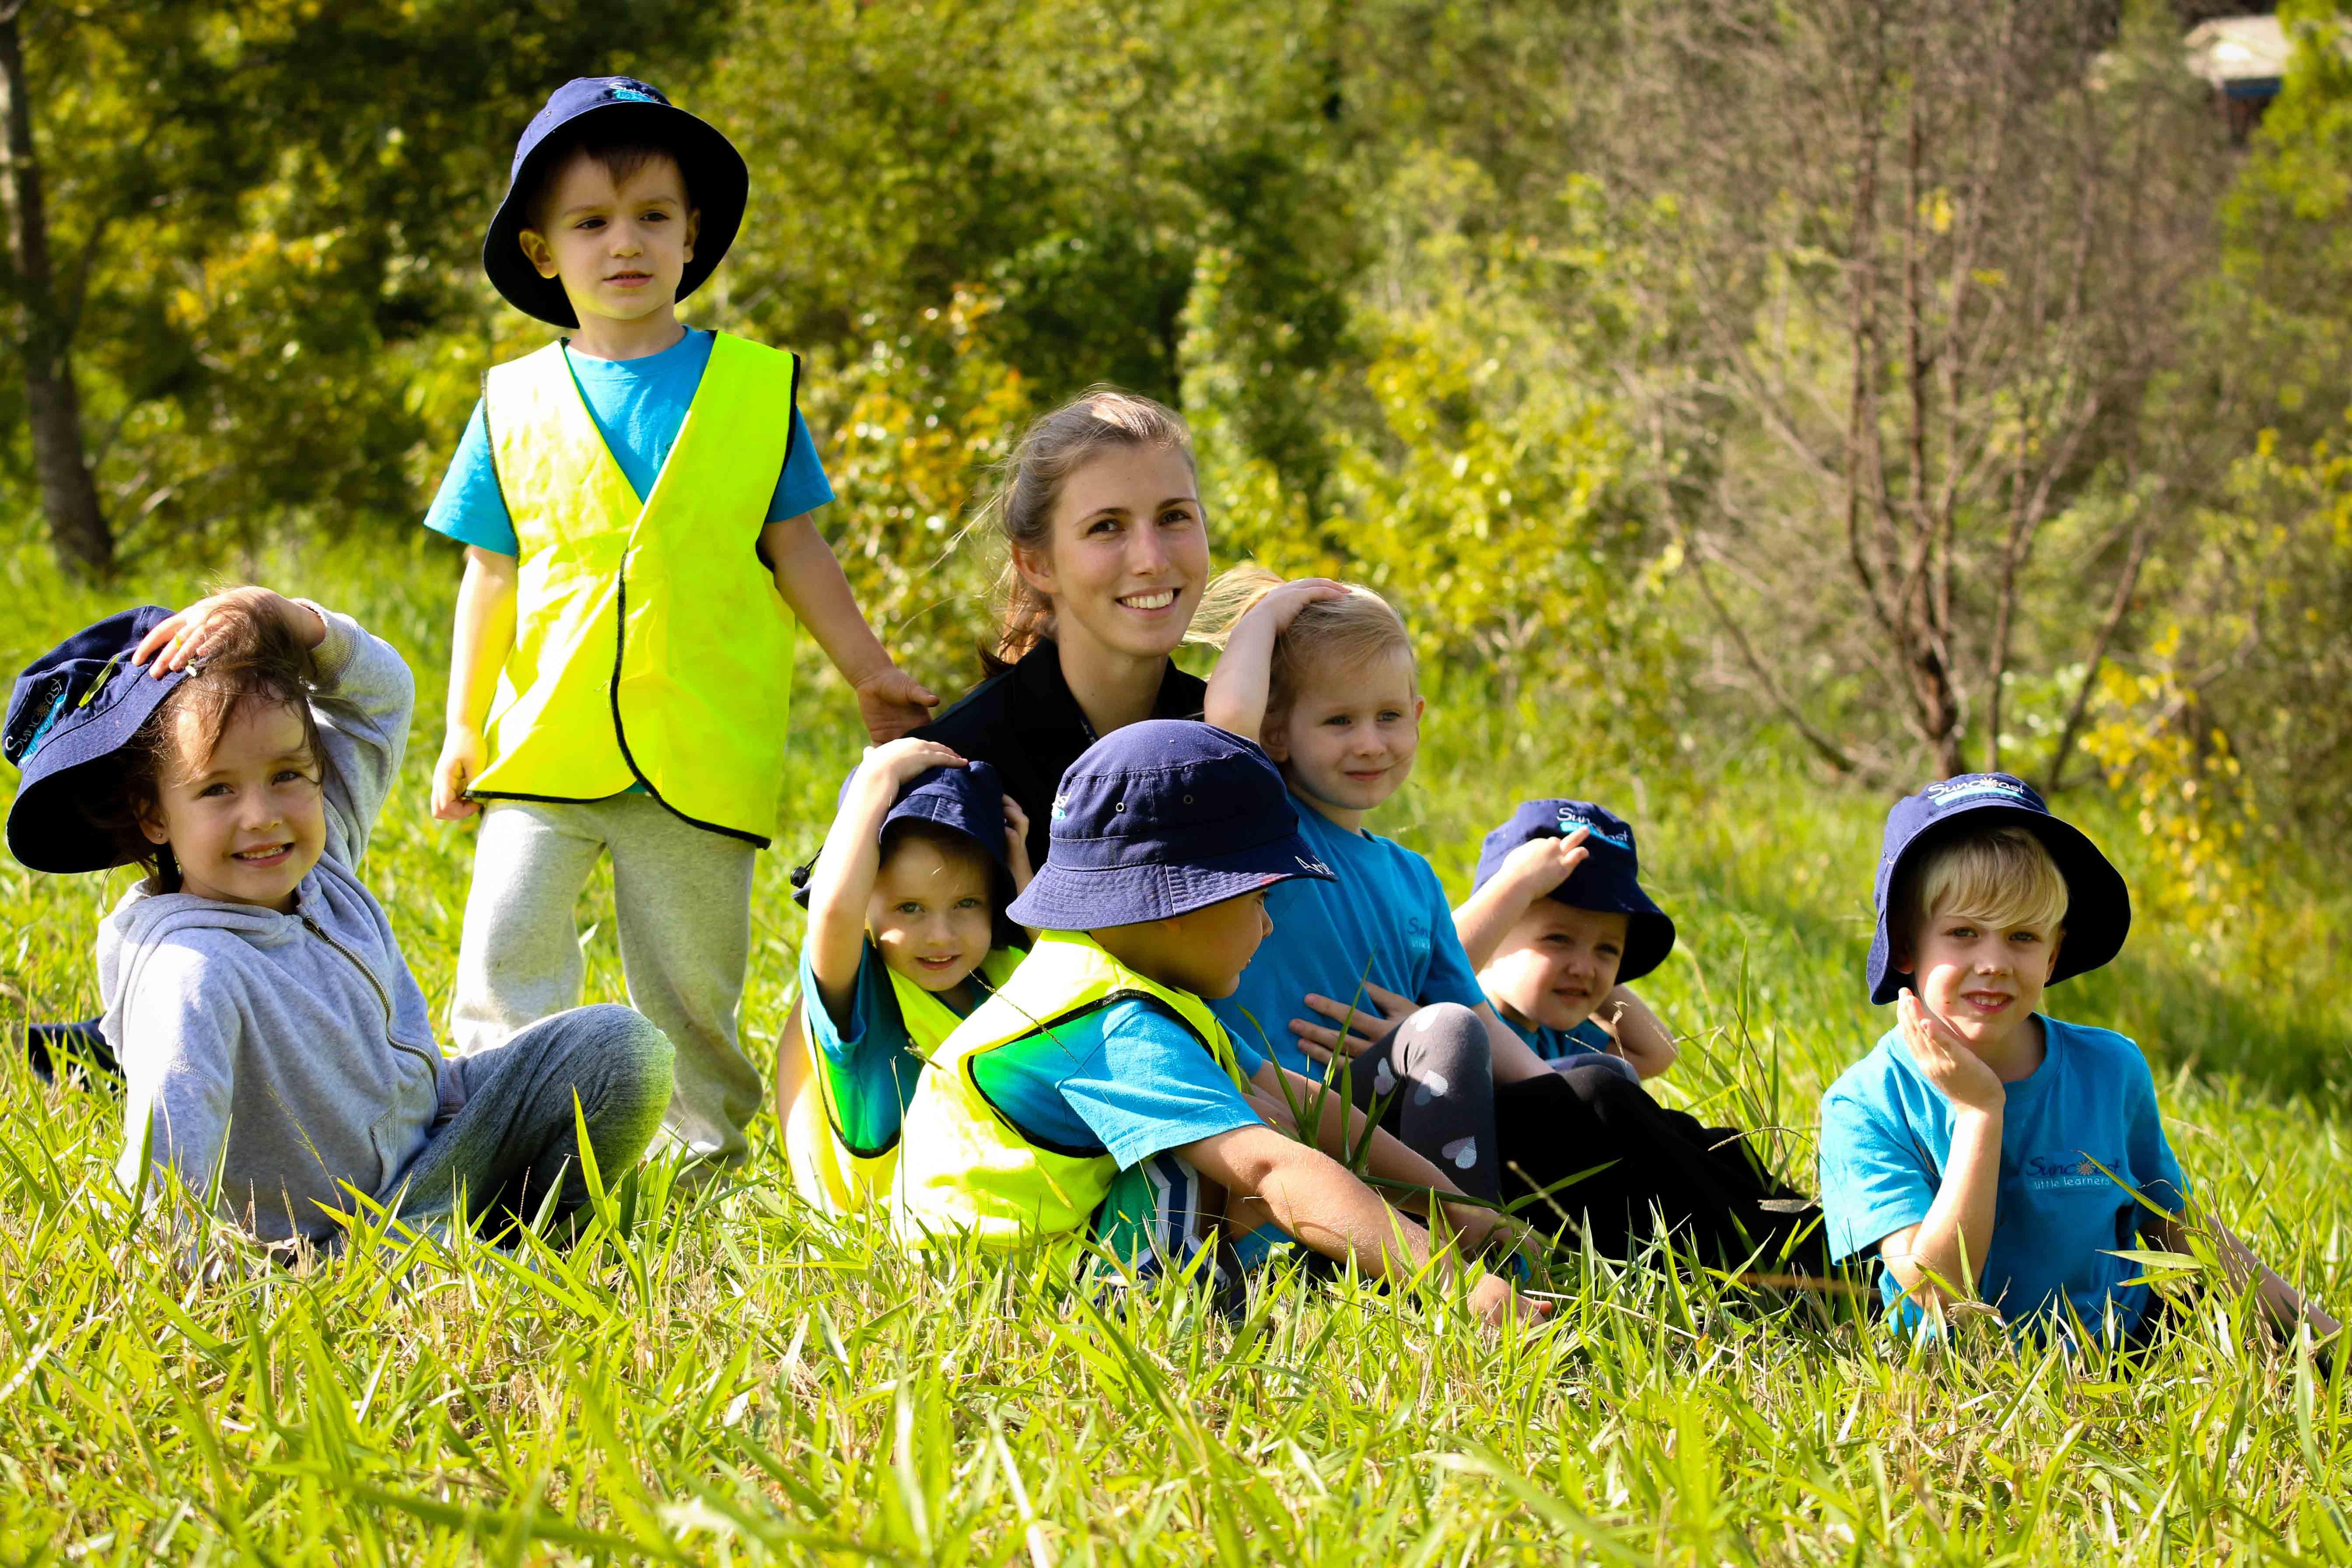 Teacher and students in field at Bush Kindy - Suncoast Little Learners